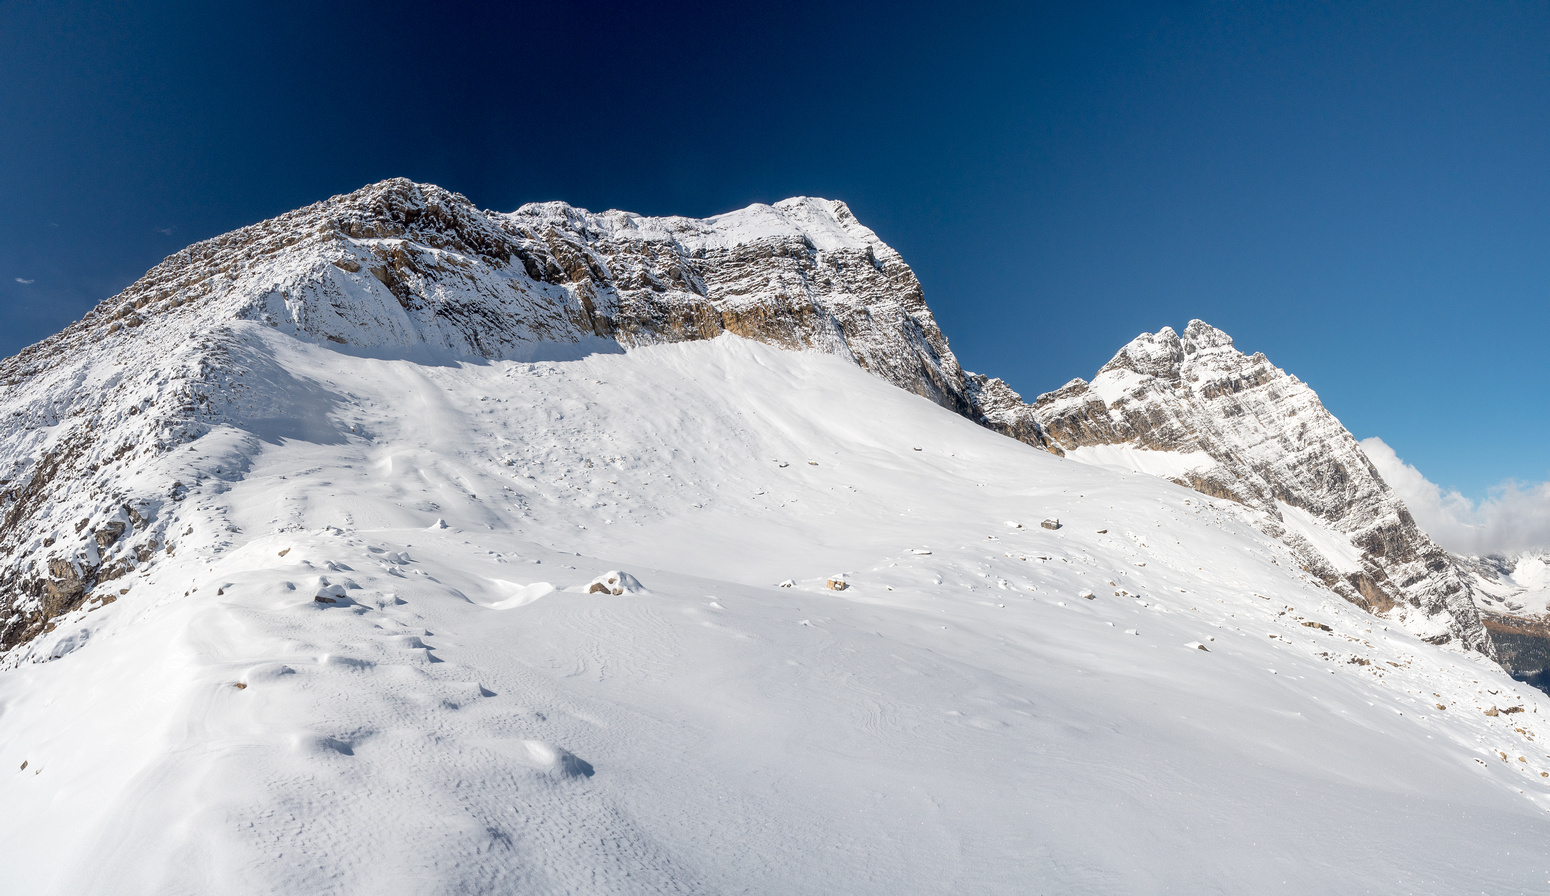 The east face appears slick and snow covered at left with the summit at center and Odaray at right.